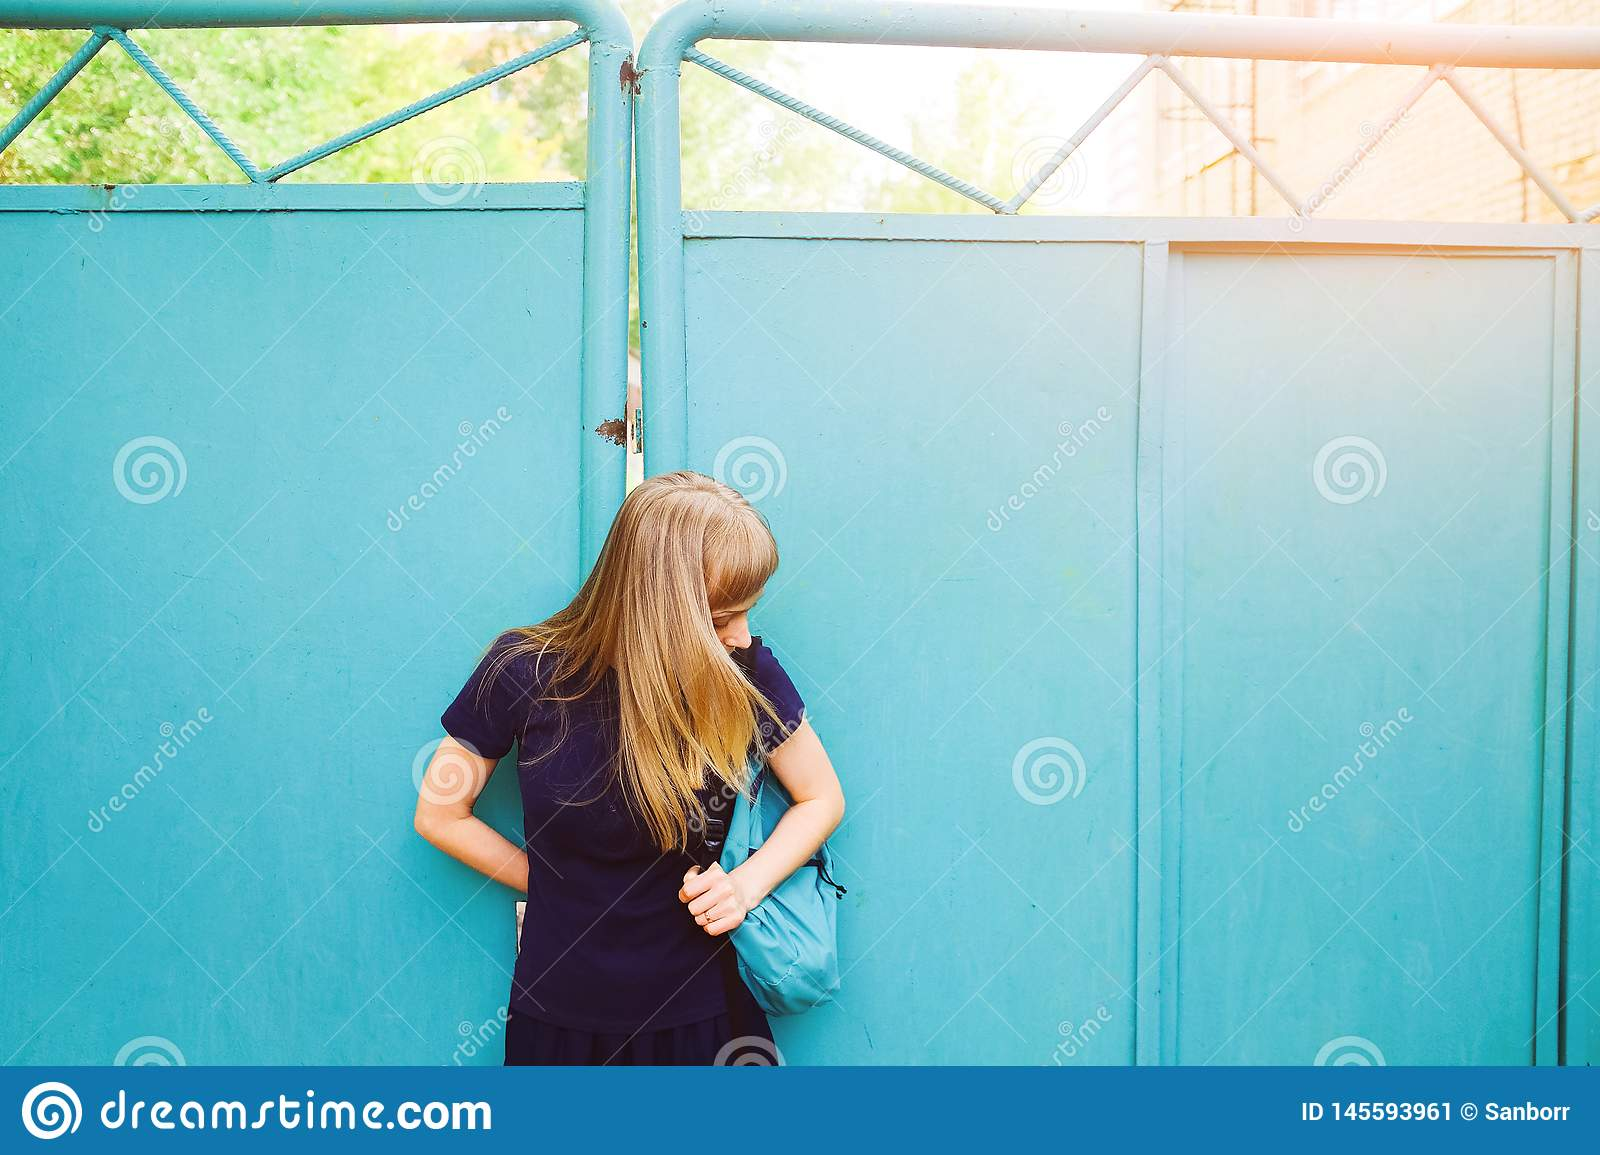 Girl with blond hair, blue Polo shirt, iron gate. The young woman looks down at her backpack. The concept of education